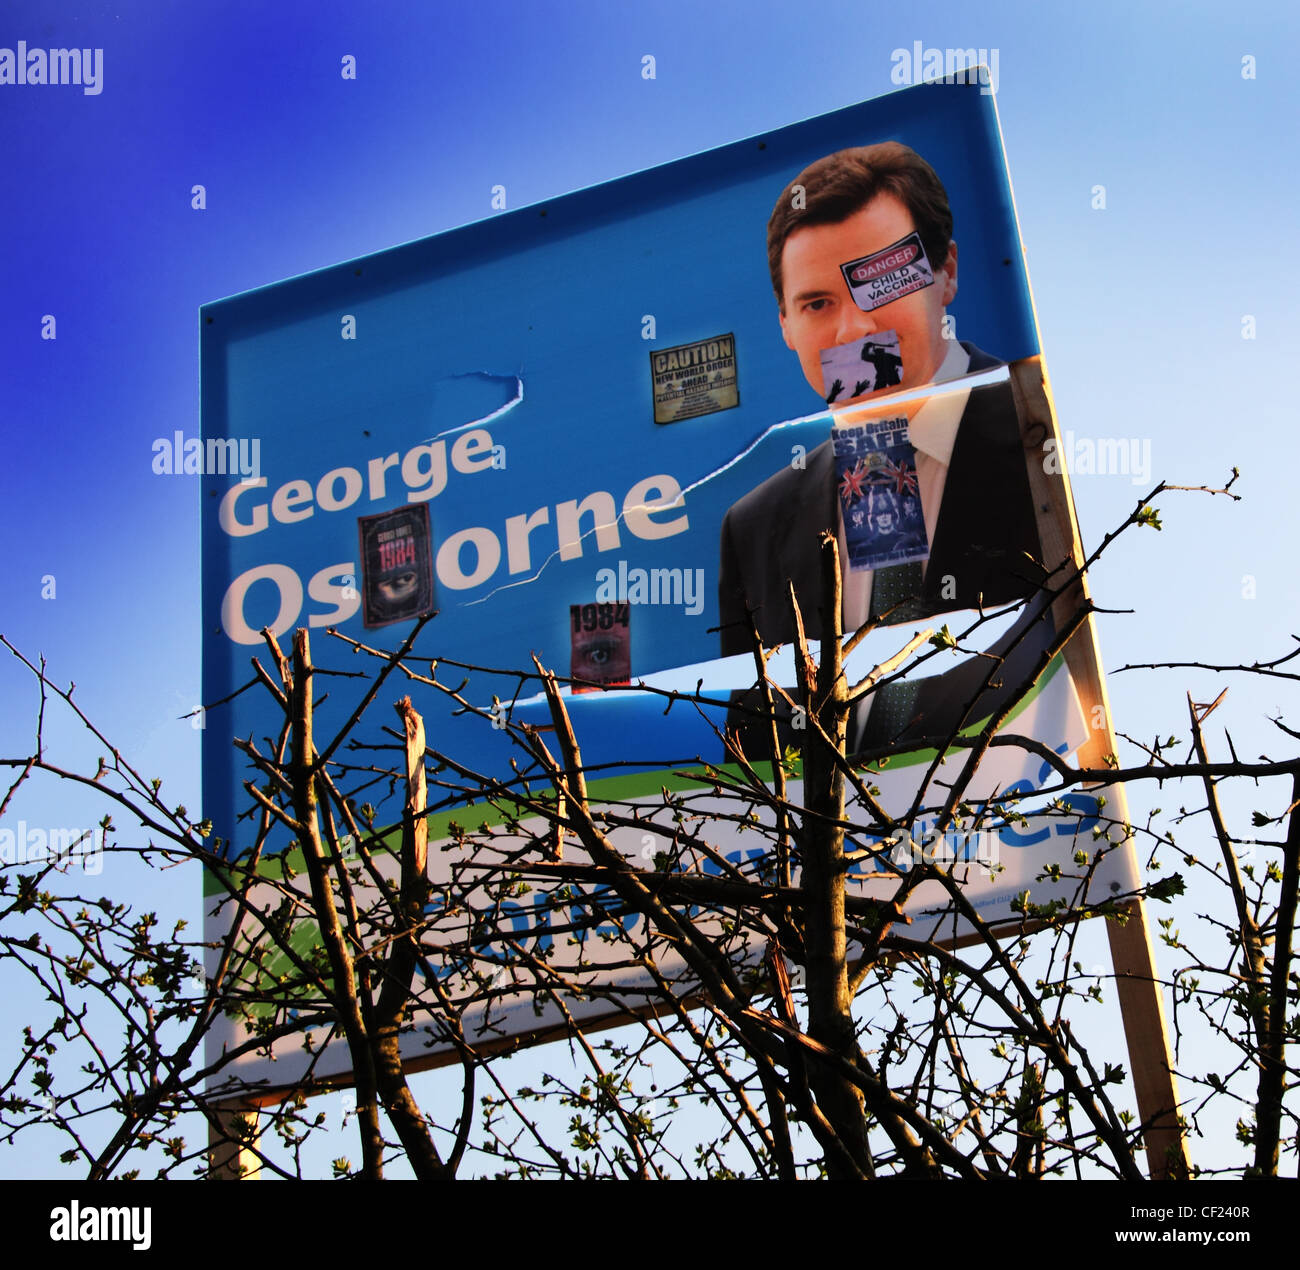 Defaced,2010,Election,Poster,for,George,Gideon,Osbourne,now,elected,MP,and,Conservative,Chancellor,for,Tatton,Ward,Cheshire,gotonysmith,farmers,field,protest,shot,hate,tory,hatred,hated,rich,career,knutsford,pickmere,Northwich,campaign,trail,George,Gideon,Oliver,Osborne,British,Conservative,politician.,He,is,the,Chancellor,of,the,Exchequer,of,the,United,Kingdom,a role to which he was appointed in May 2010,and,has,been,the,Member,of,Parliament,for,Tatton,since,2001,Osborne,is,part,of,the,old,Anglo-Irish,aristocracy,and,is,heir,to,the,Osborne,baronetcy.,educated,at,St,Pauls,School,and,Magdalen,College,Oxford,father,Sir Peter Osborne,17th Baronet,co-founded,the,firm,of,fabric,and,wallpapers,designers,Osborne,&,Little,gotonysmith,George Gideon Oliver Osborne,Buy Pictures of,Buy Images Of